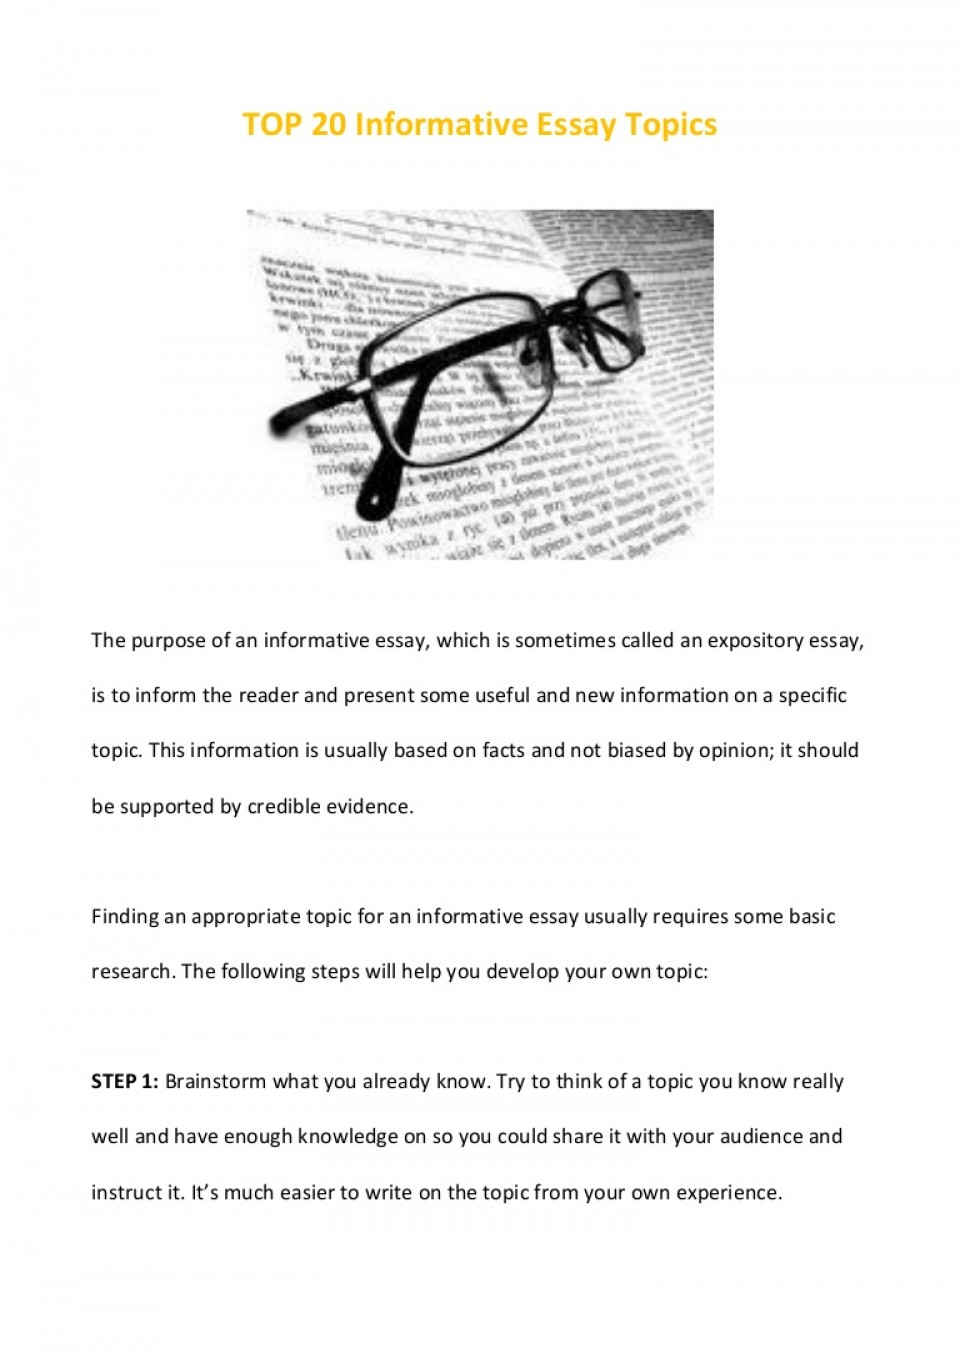 011 Essay Example Top20informativeessaytopics Phpapp02 Thumbnail Informative Remarkable Topics For 4th Grade Expository High School 6th Graders 960